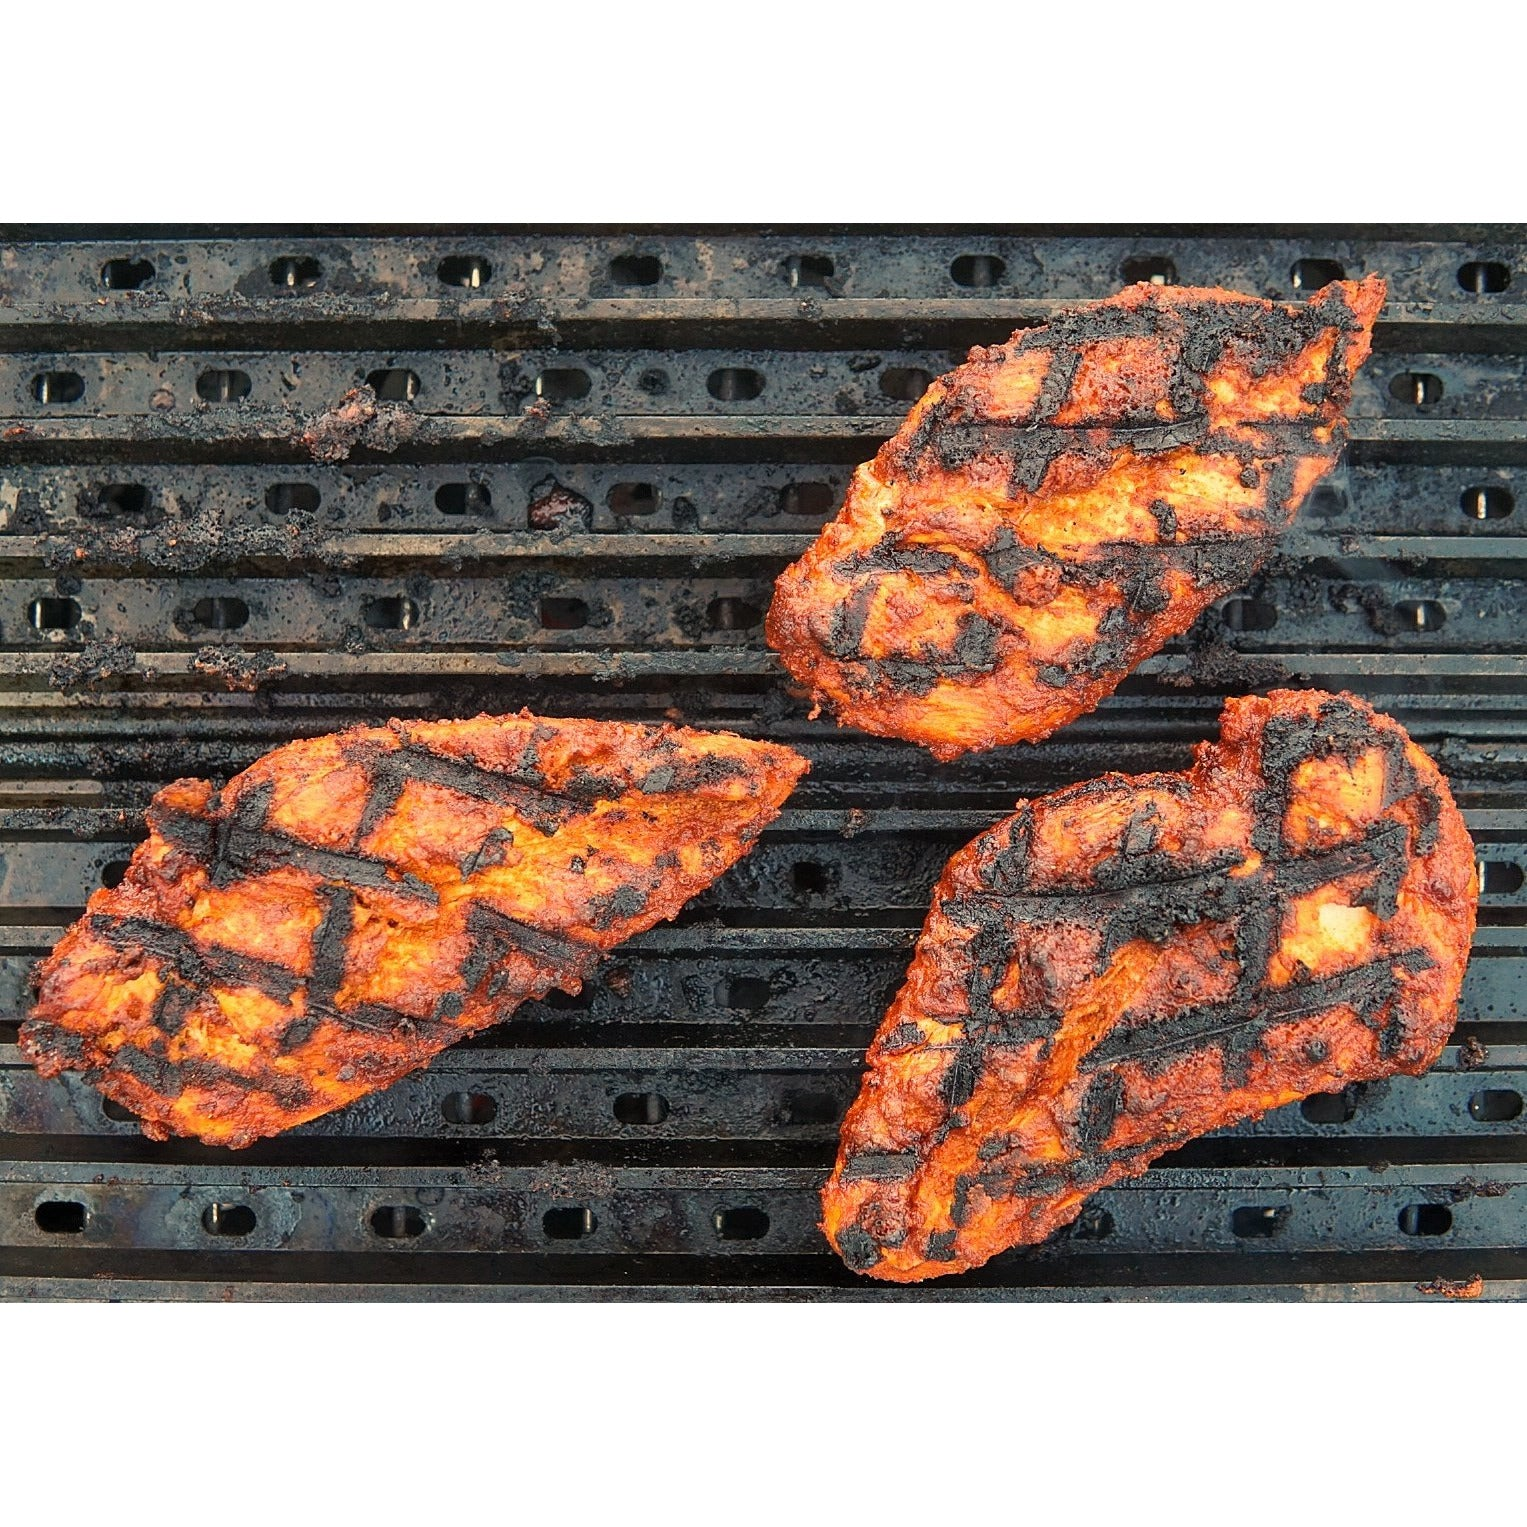 Tandoori chicken breasts